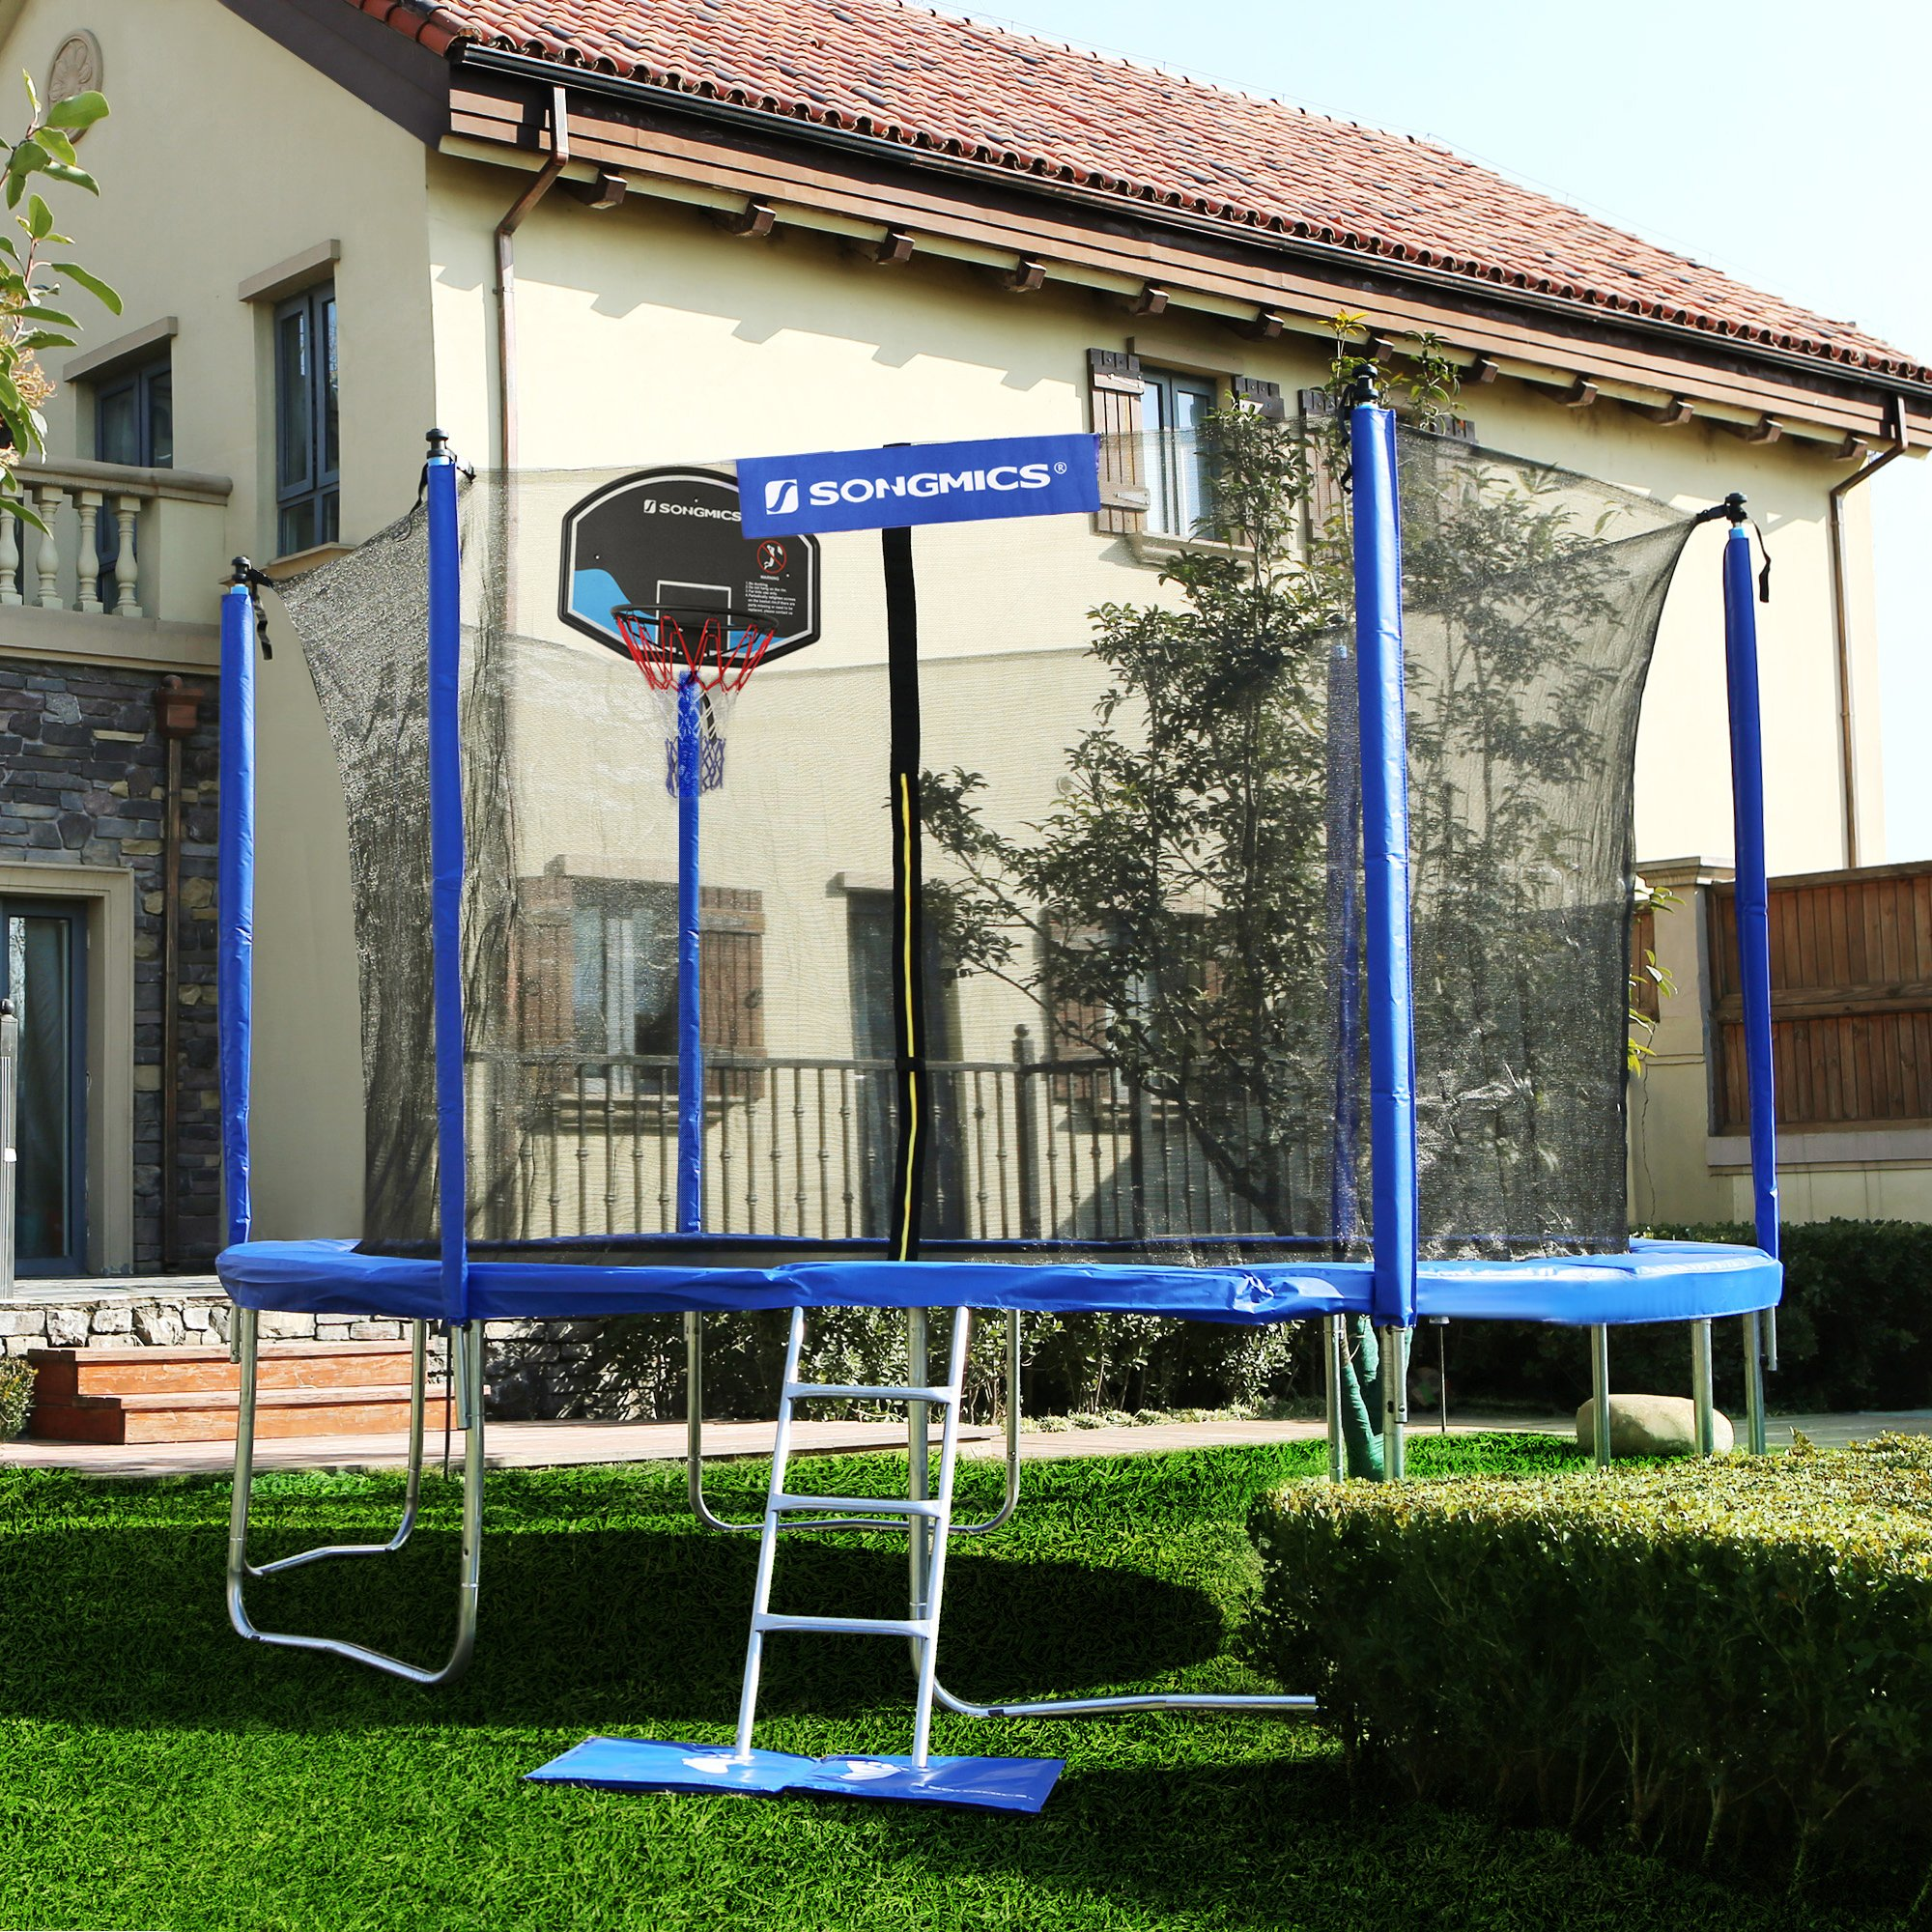 SONGMICS Outdoor Trampoline 14-Feet for Kids with Basketball Hoop and Backboard Enclosure Net Jumping Mat and Safety Spring Cover Padding TÜV Rheinland Certificated According to ASTM and GS USTR14BU by SONGMICS (Image #2)